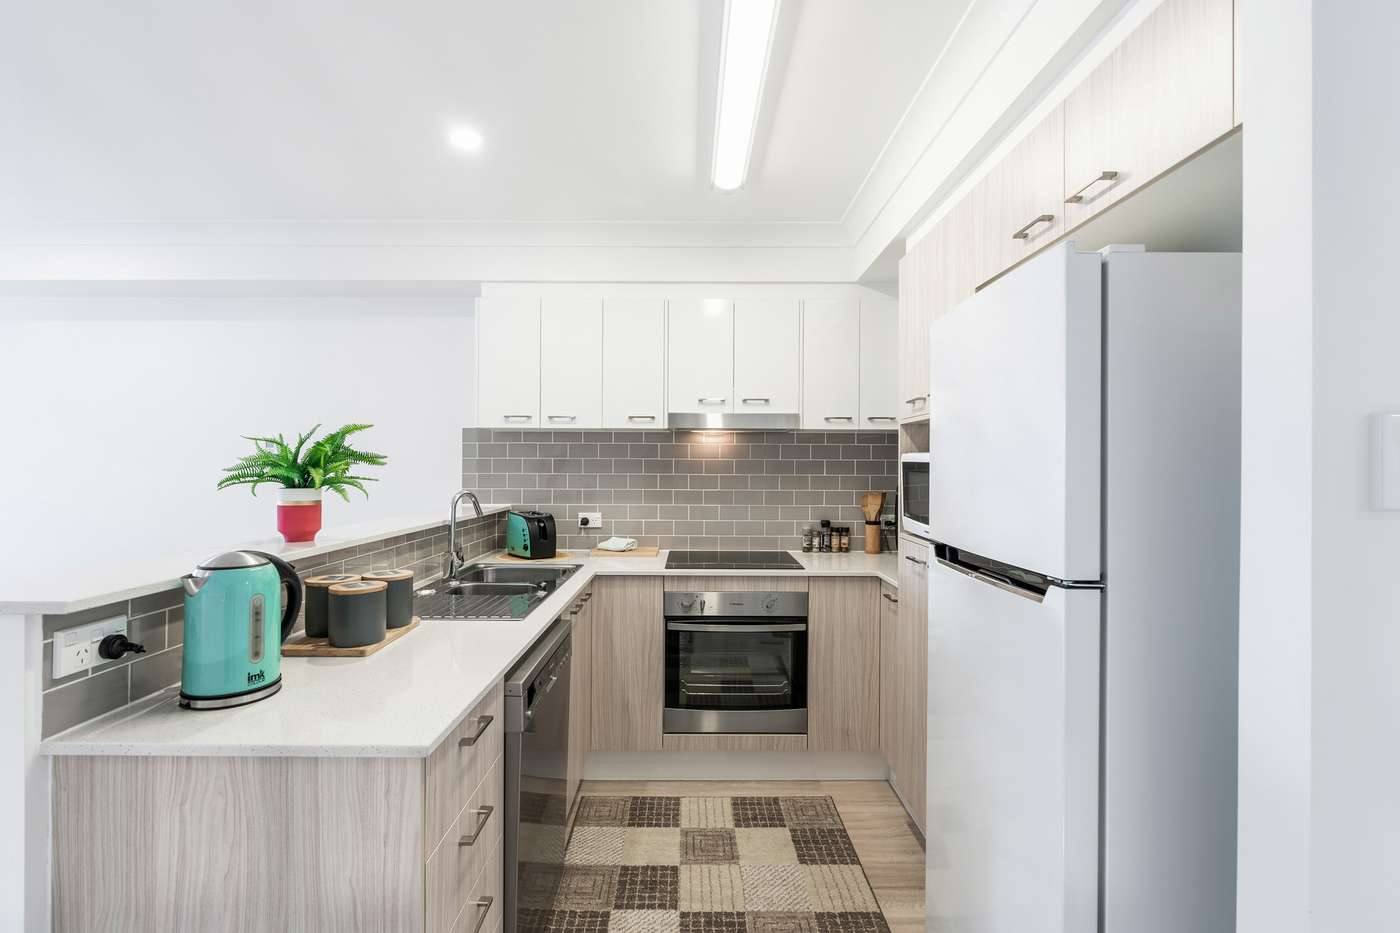 Main view of Homely townhouse listing, 2/39 Surman Street, Birkdale, QLD 4159